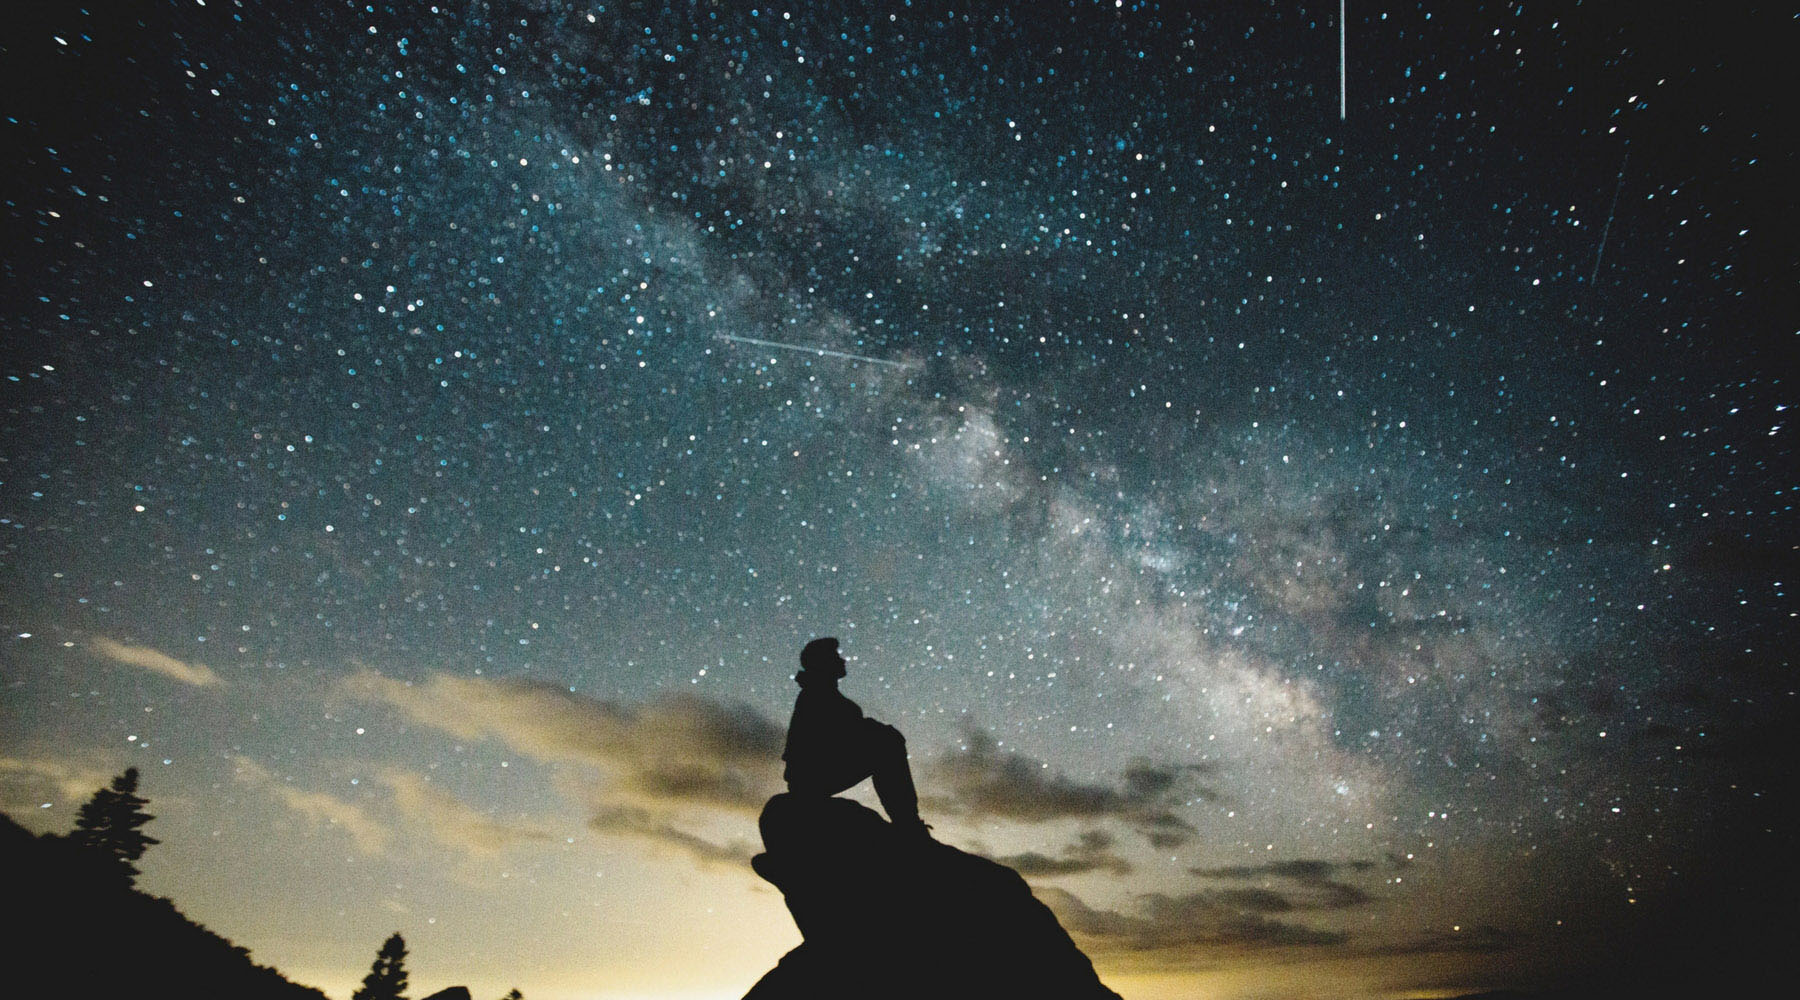 The silhouette of a person looking up at a starry sky.